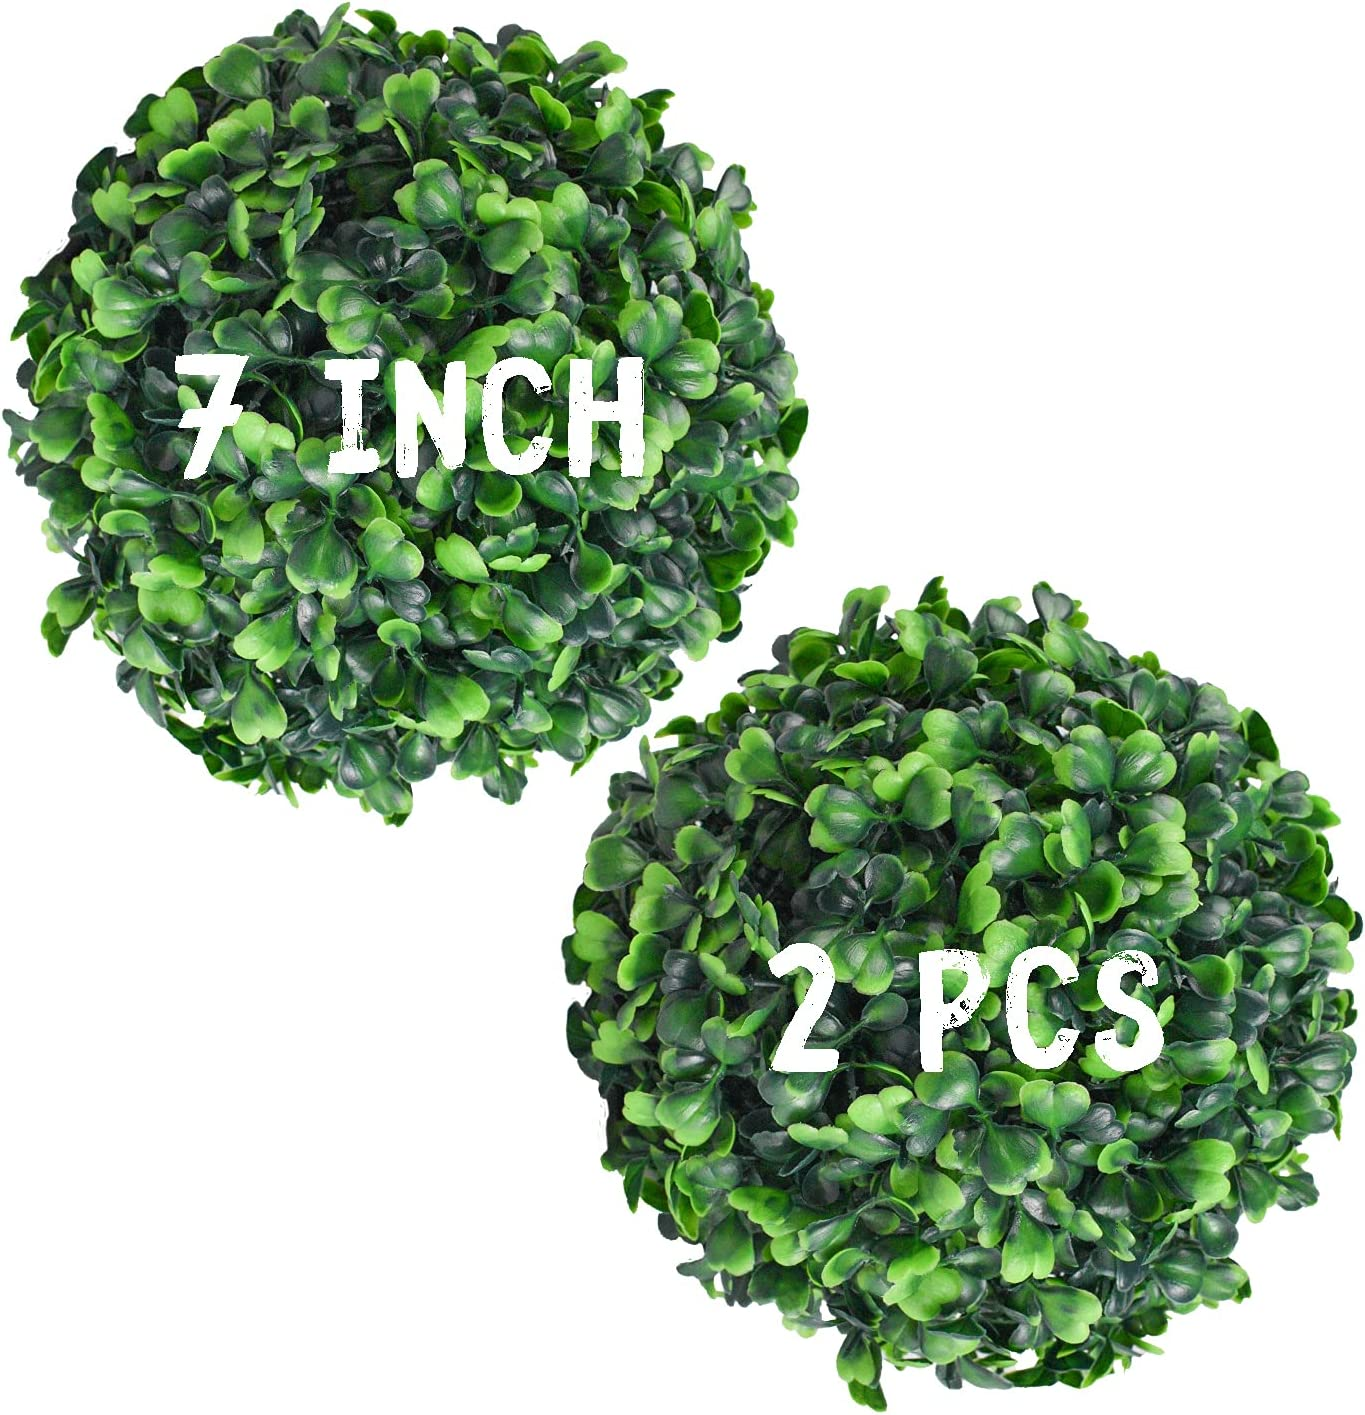 Decwin 2 Pcs Credence 7 Inch Artificial specialty shop Topiary Boxwood Plant Green Ball